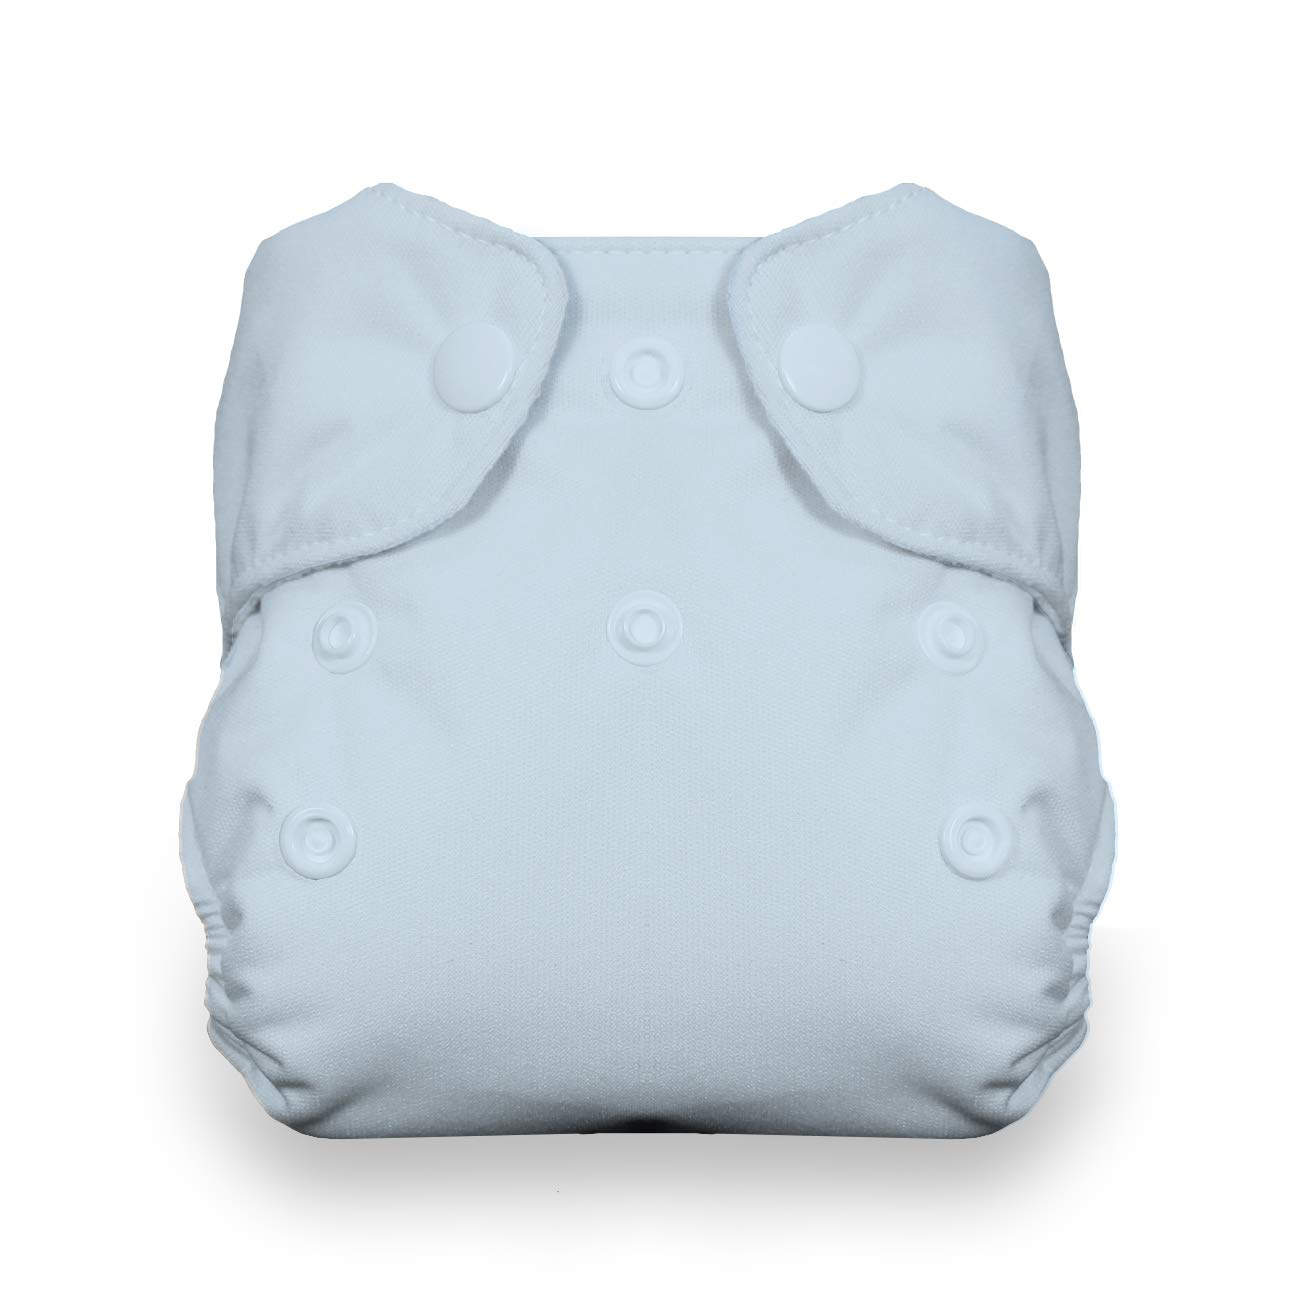 Thirsties Newborn All in One Cloth Diaper, Snap Closure, Ice Blue (5-14 lbs)